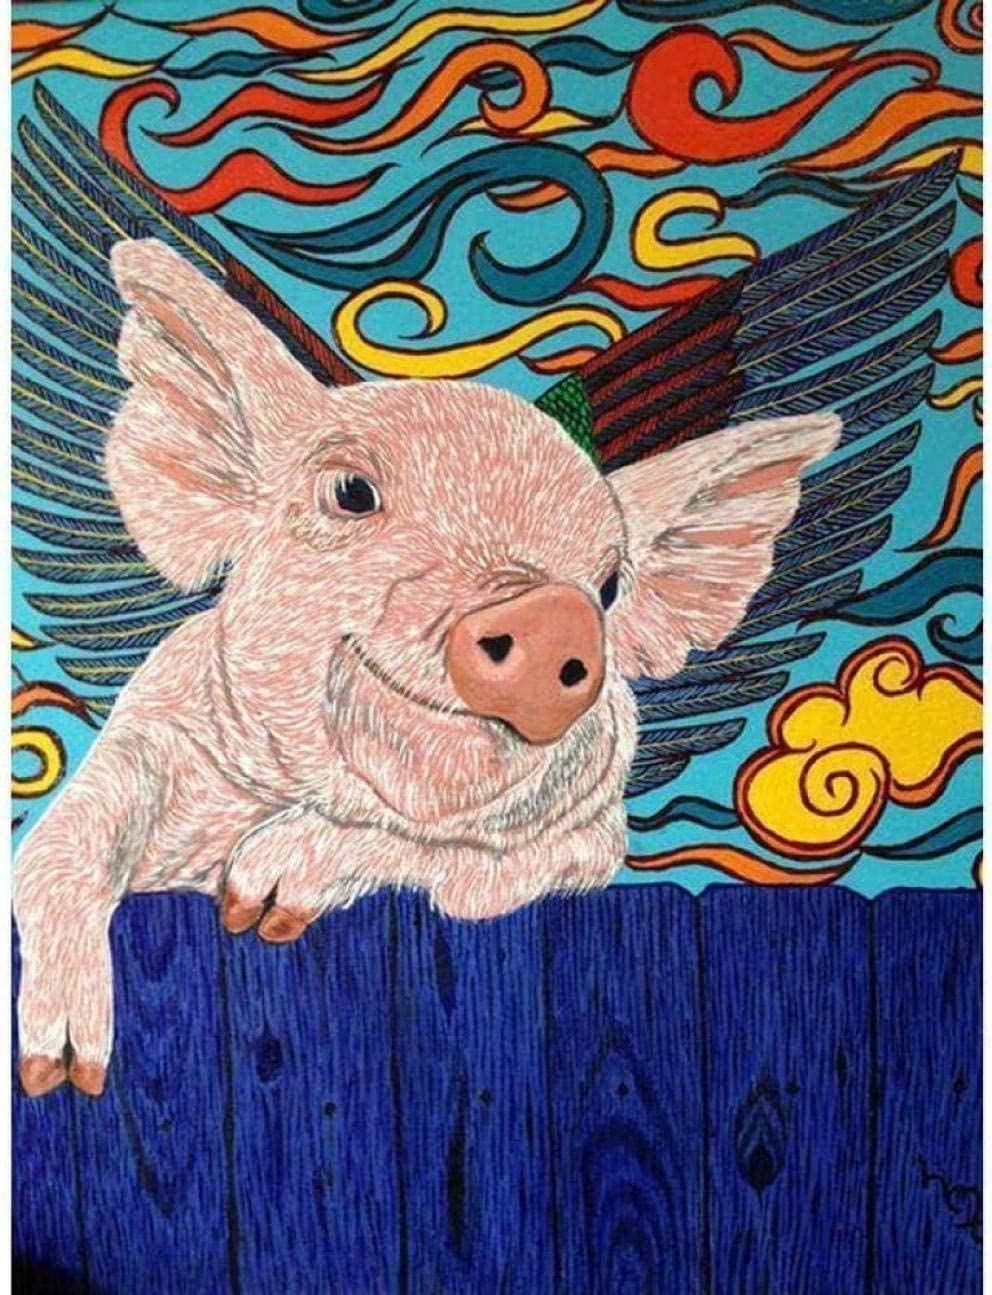 YHX926 Cross Stitch Kits Max 51% OFF for Beginner Cute Pig Adults Stamped Cr 2021 model